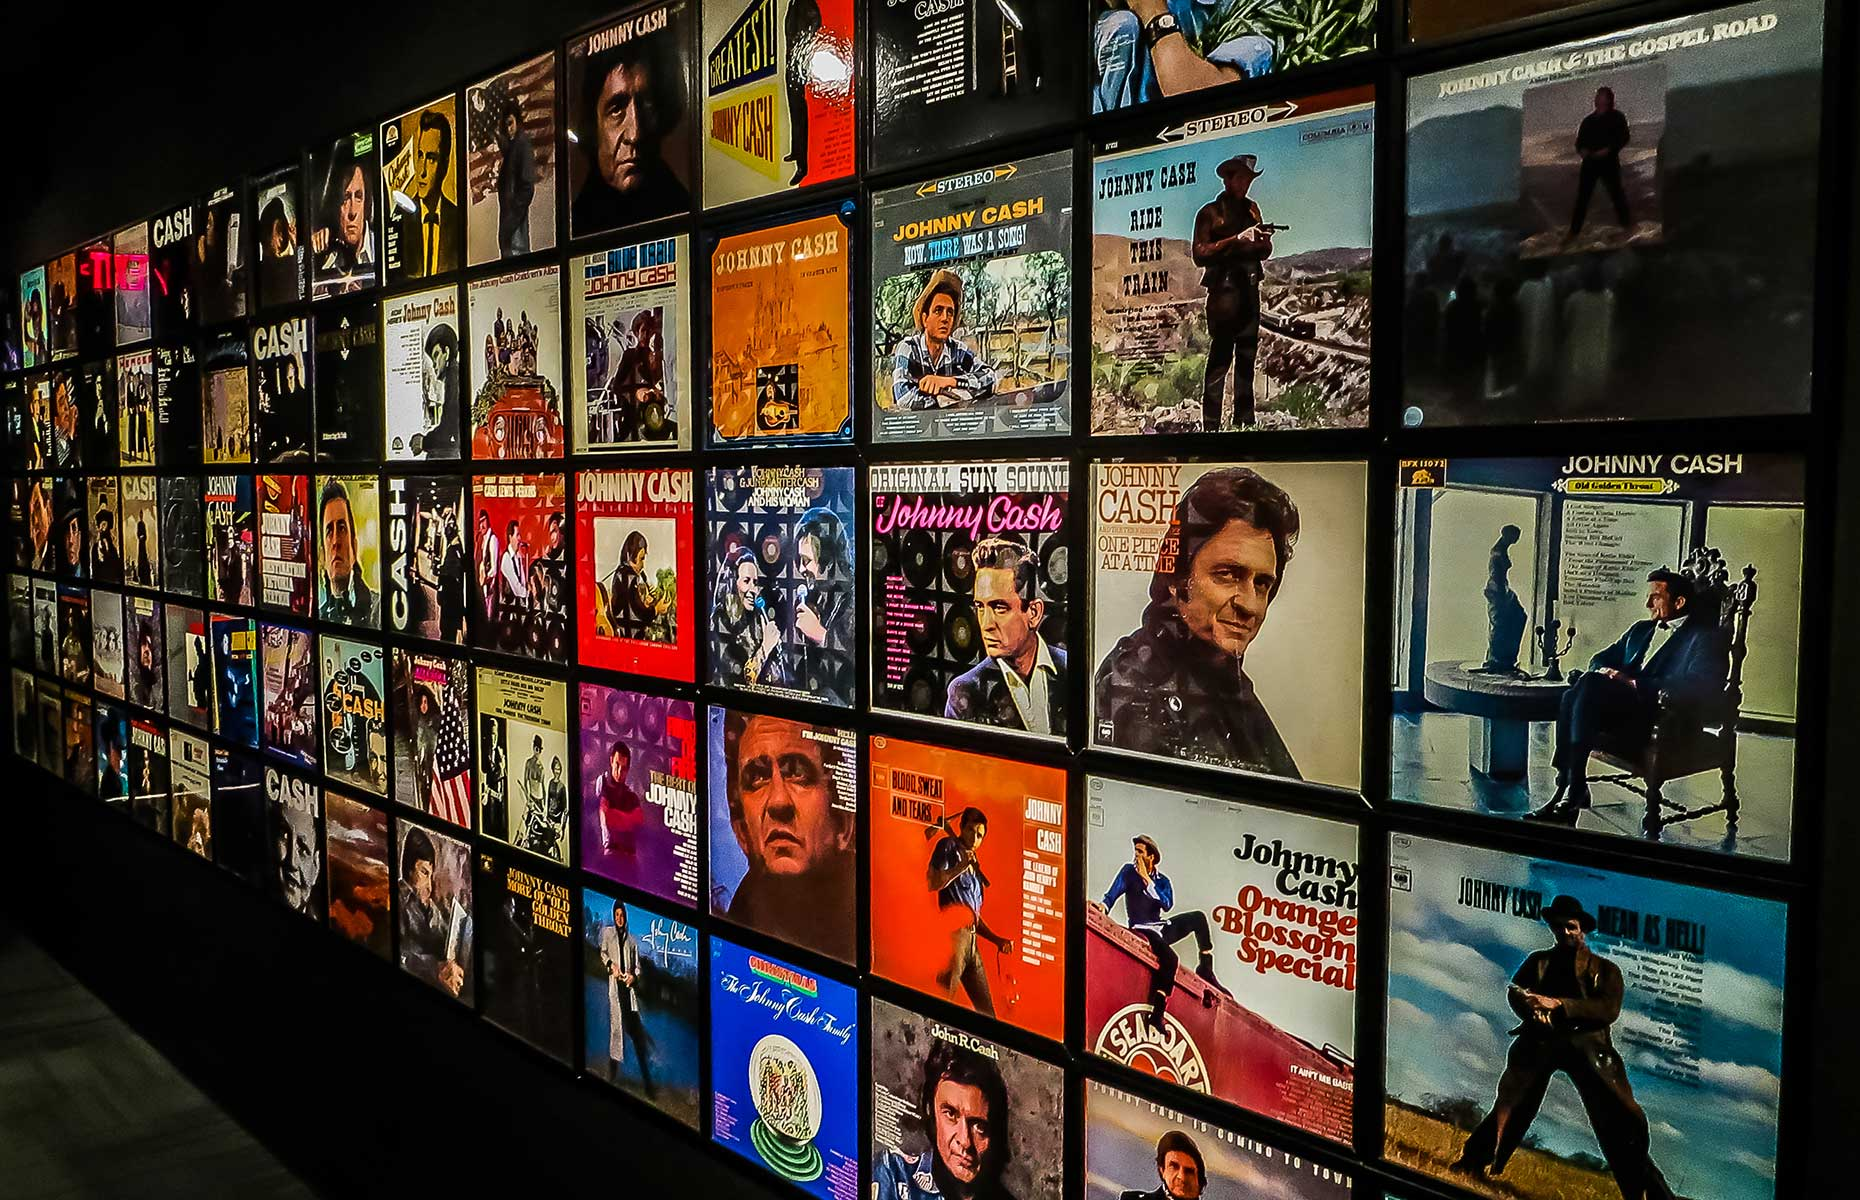 Johnny Cash Museum interior, Nashville